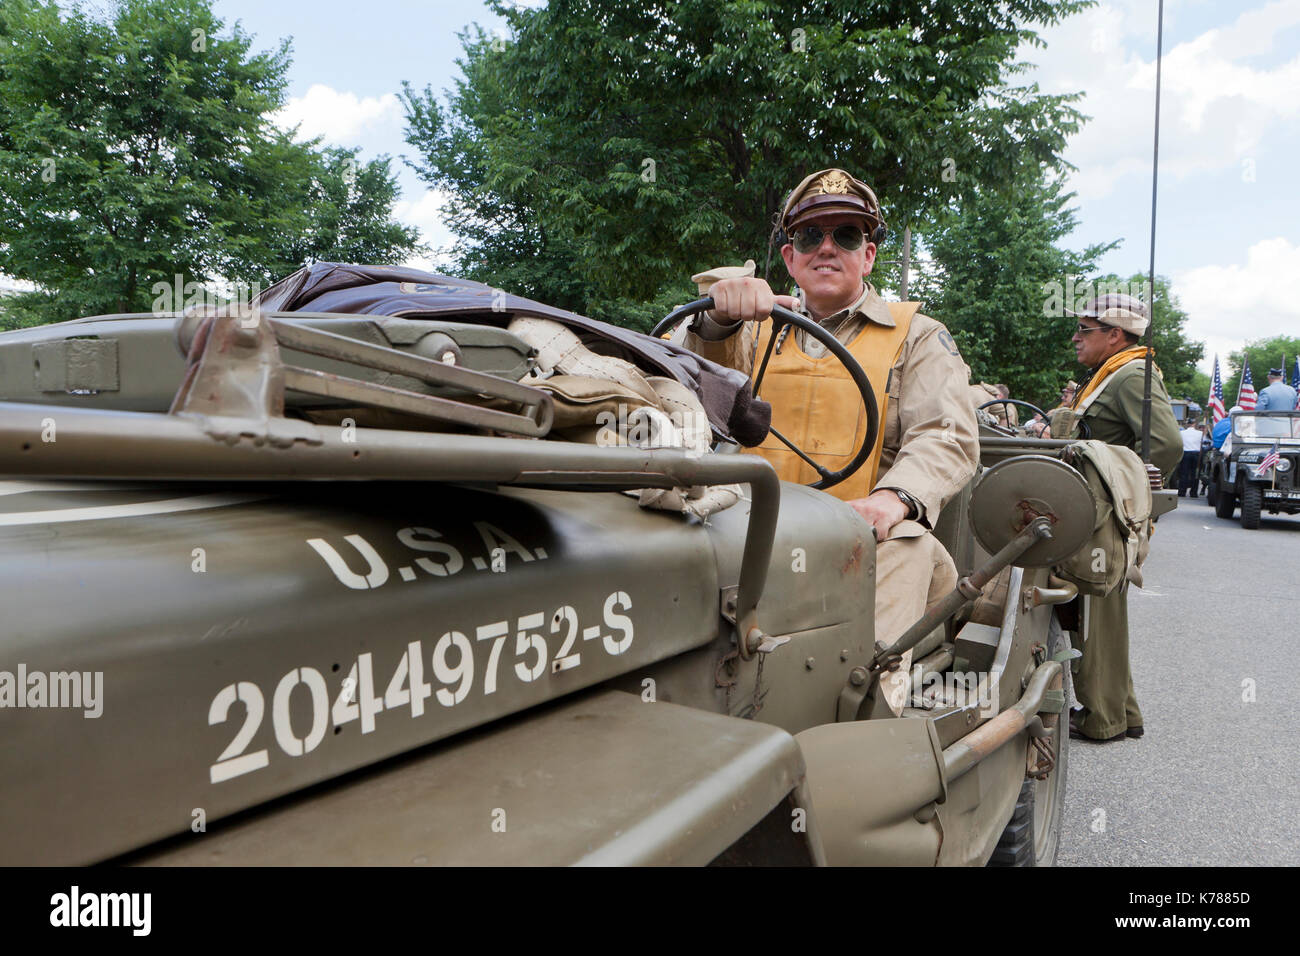 US Air Force reenactors of World War II participate in the National Memorial Day Parade - Washington, DC USA Stock Photo